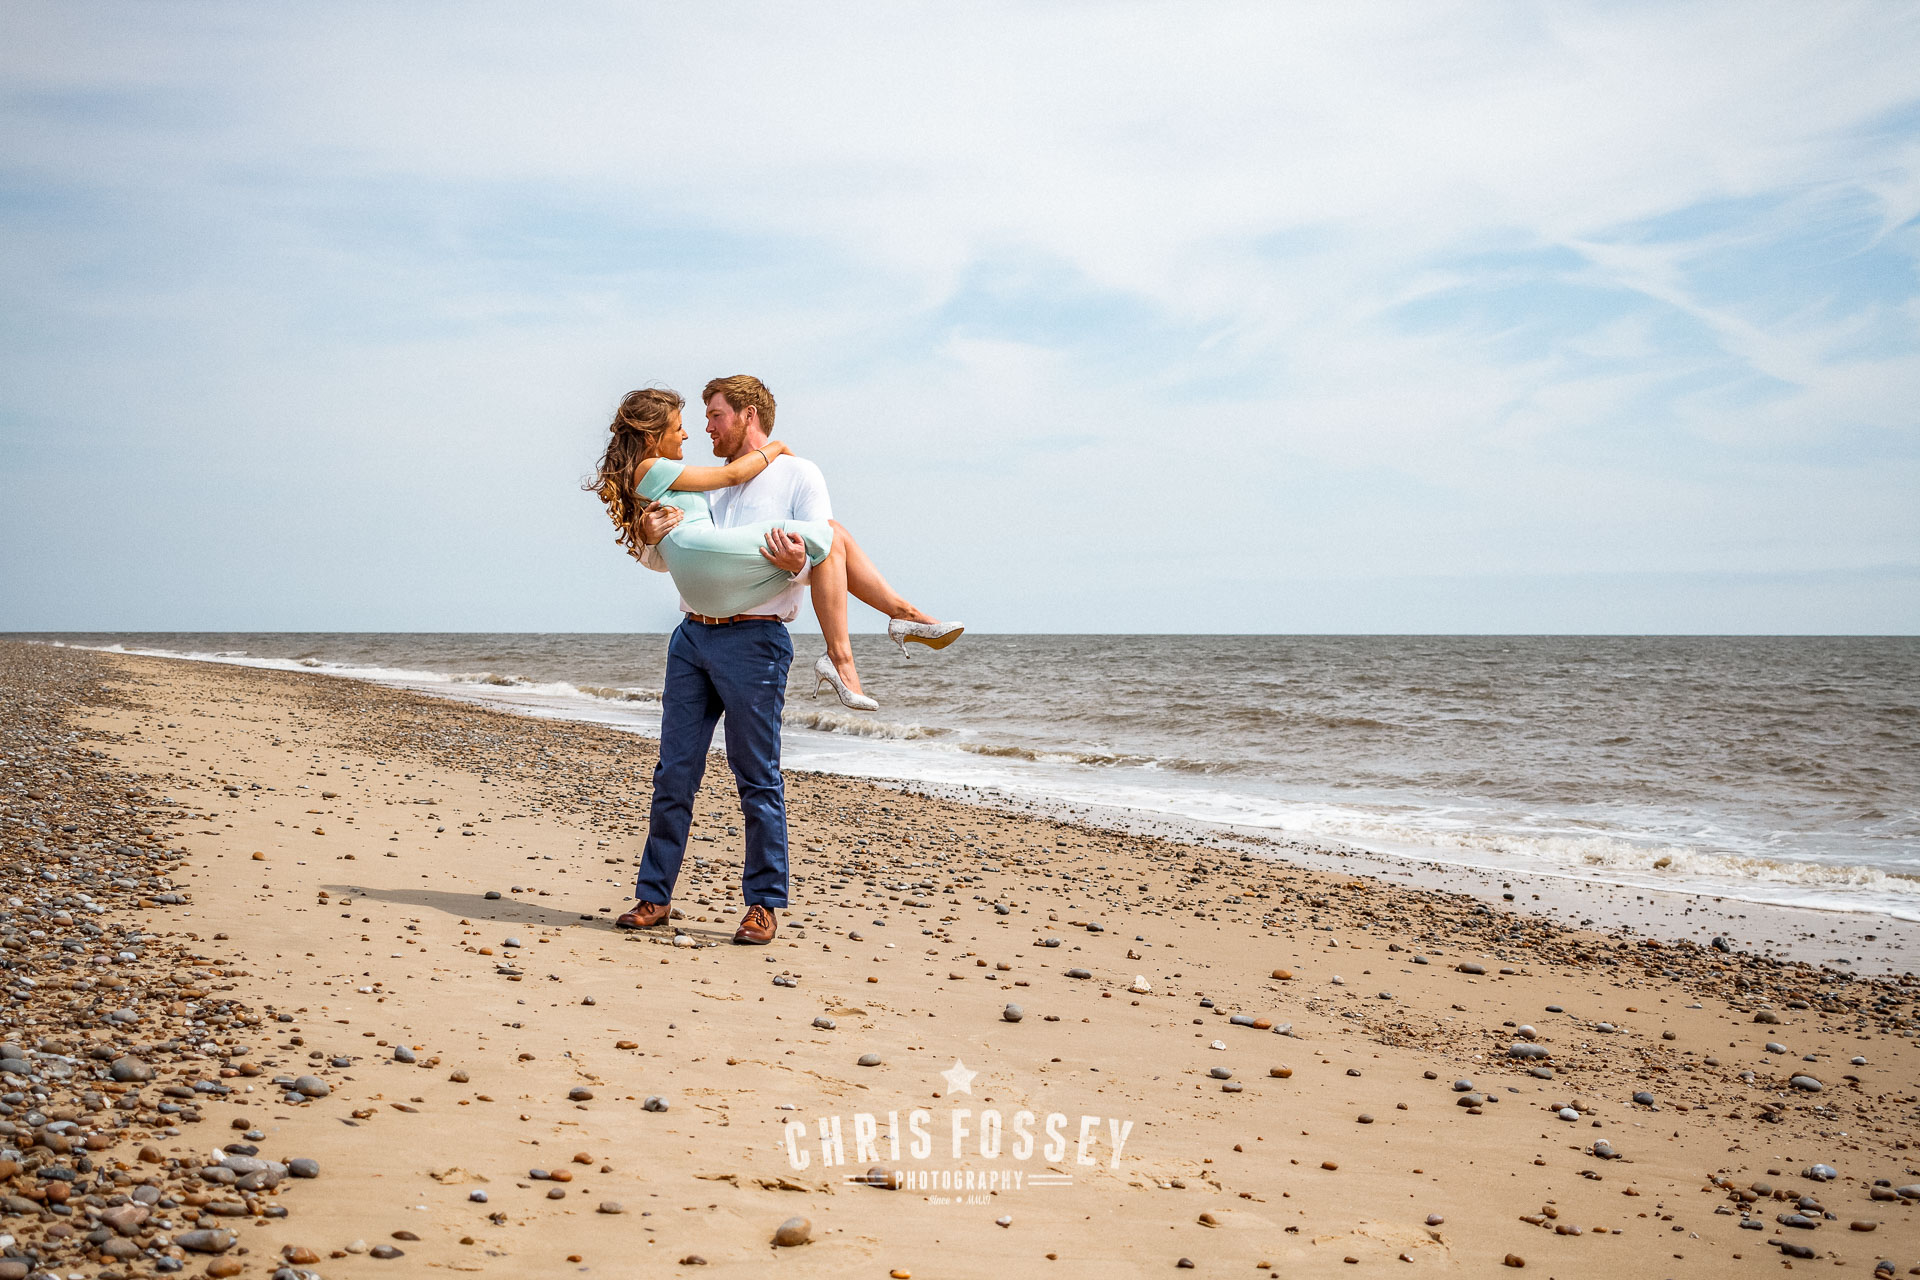 Warwickshire Wedding Photography Portfolio-Suffolk-beach-wedding-photography-thorpeness-11-108